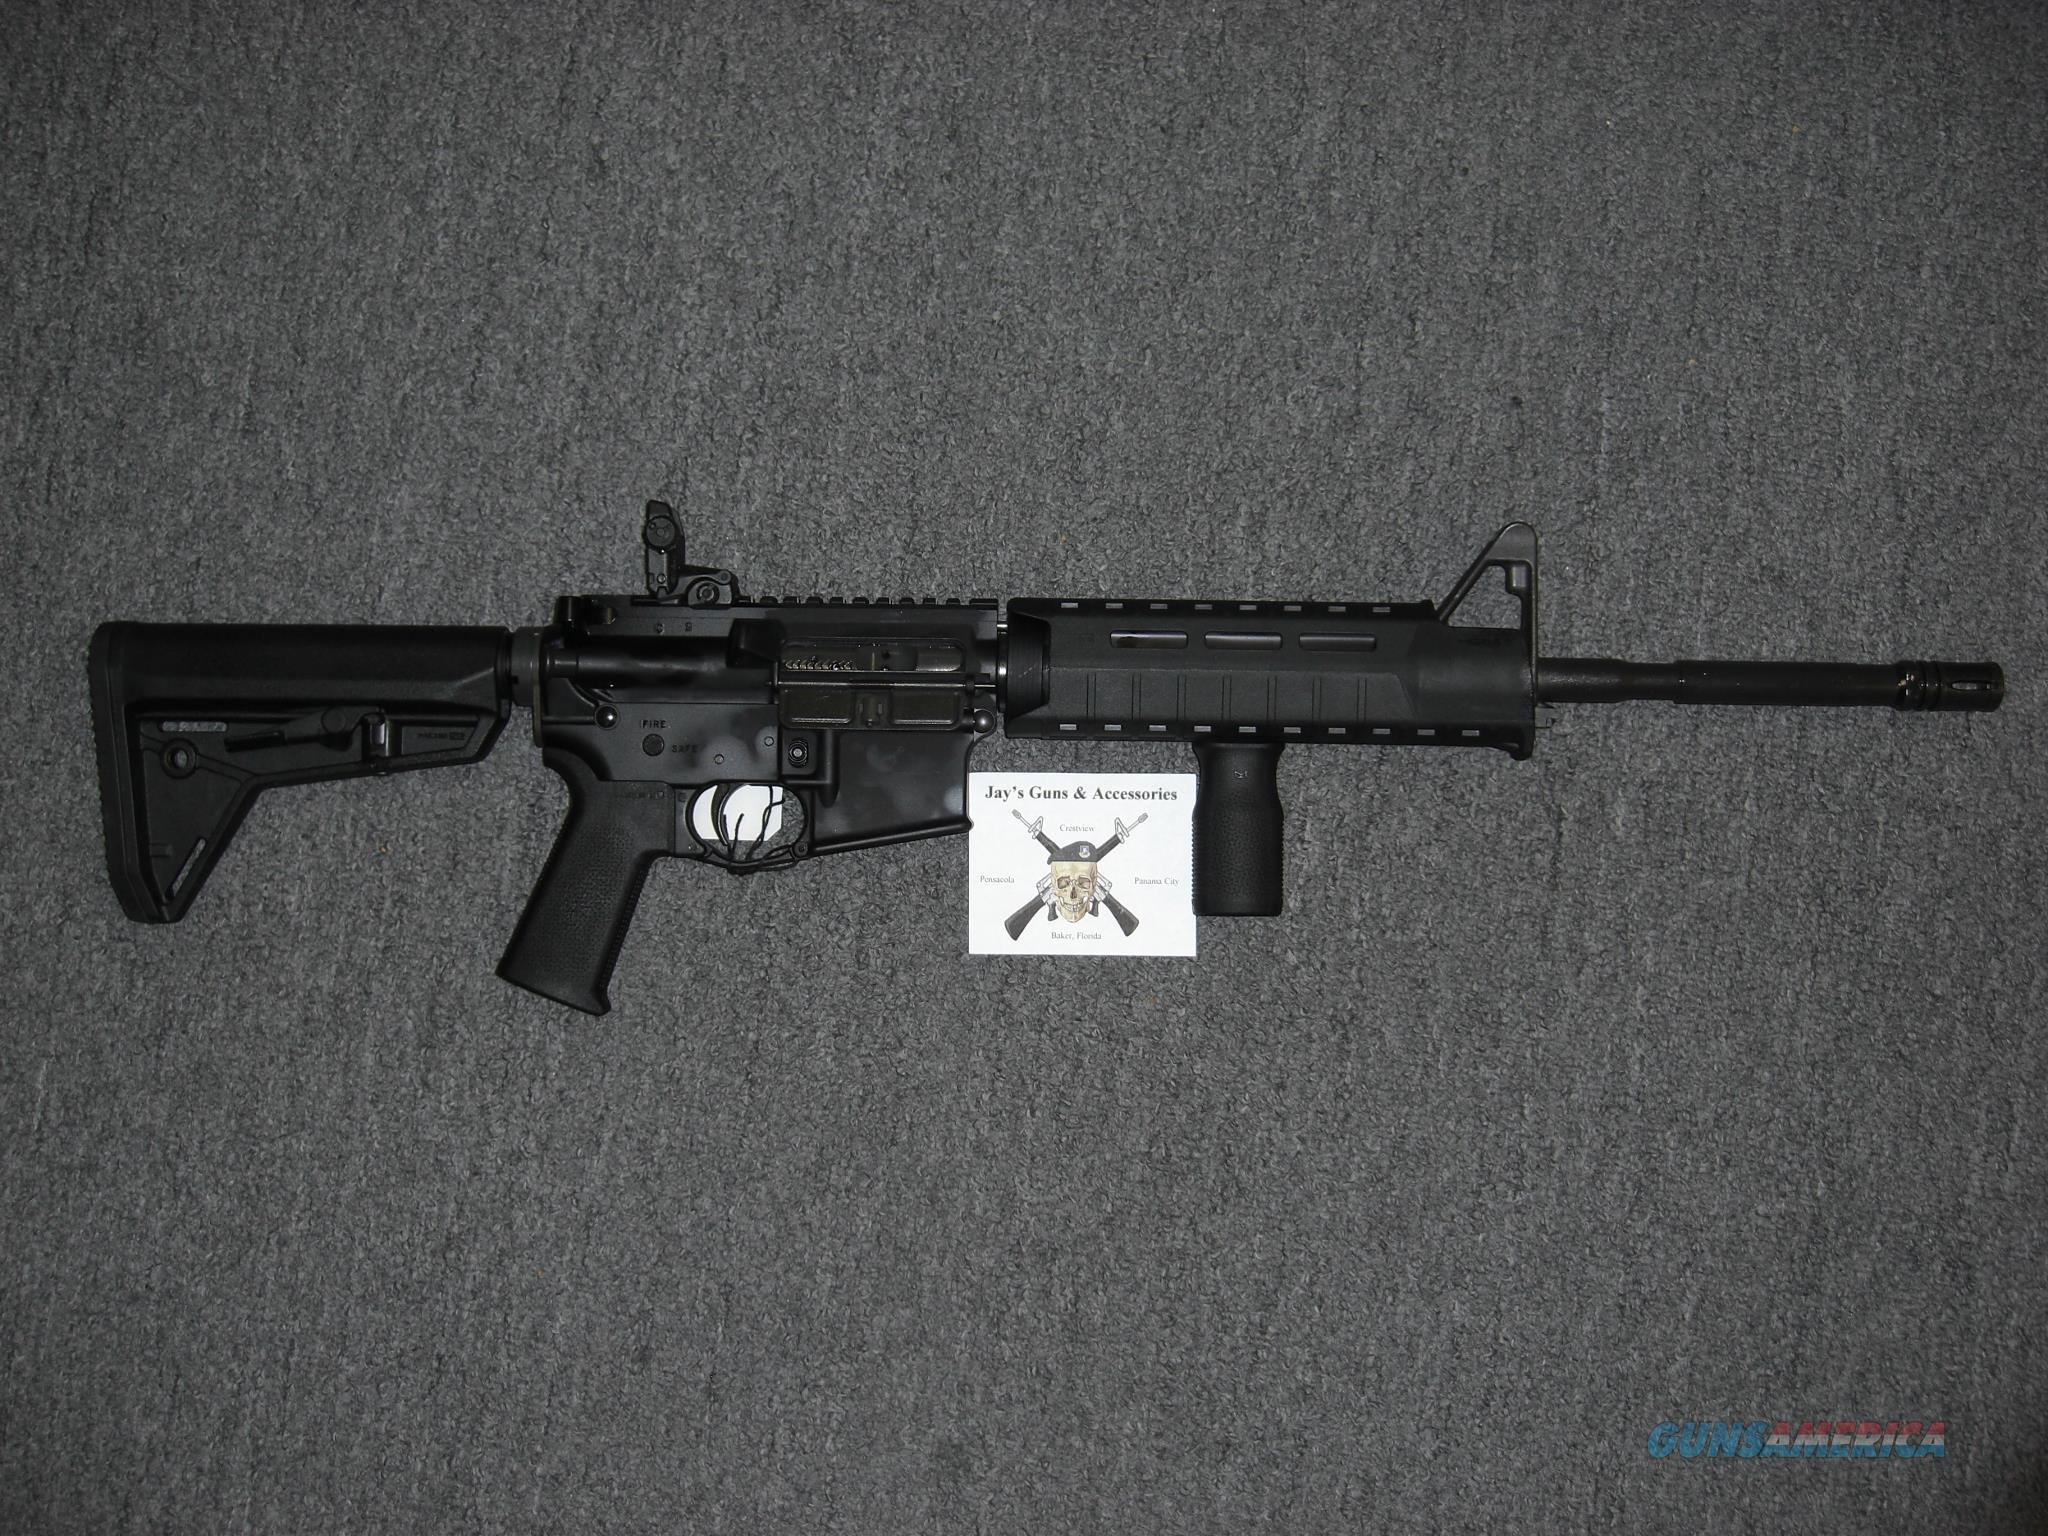 Colt M4 Carbine (LE6920MPS-B)  Guns > Rifles > Colt Military/Tactical Rifles